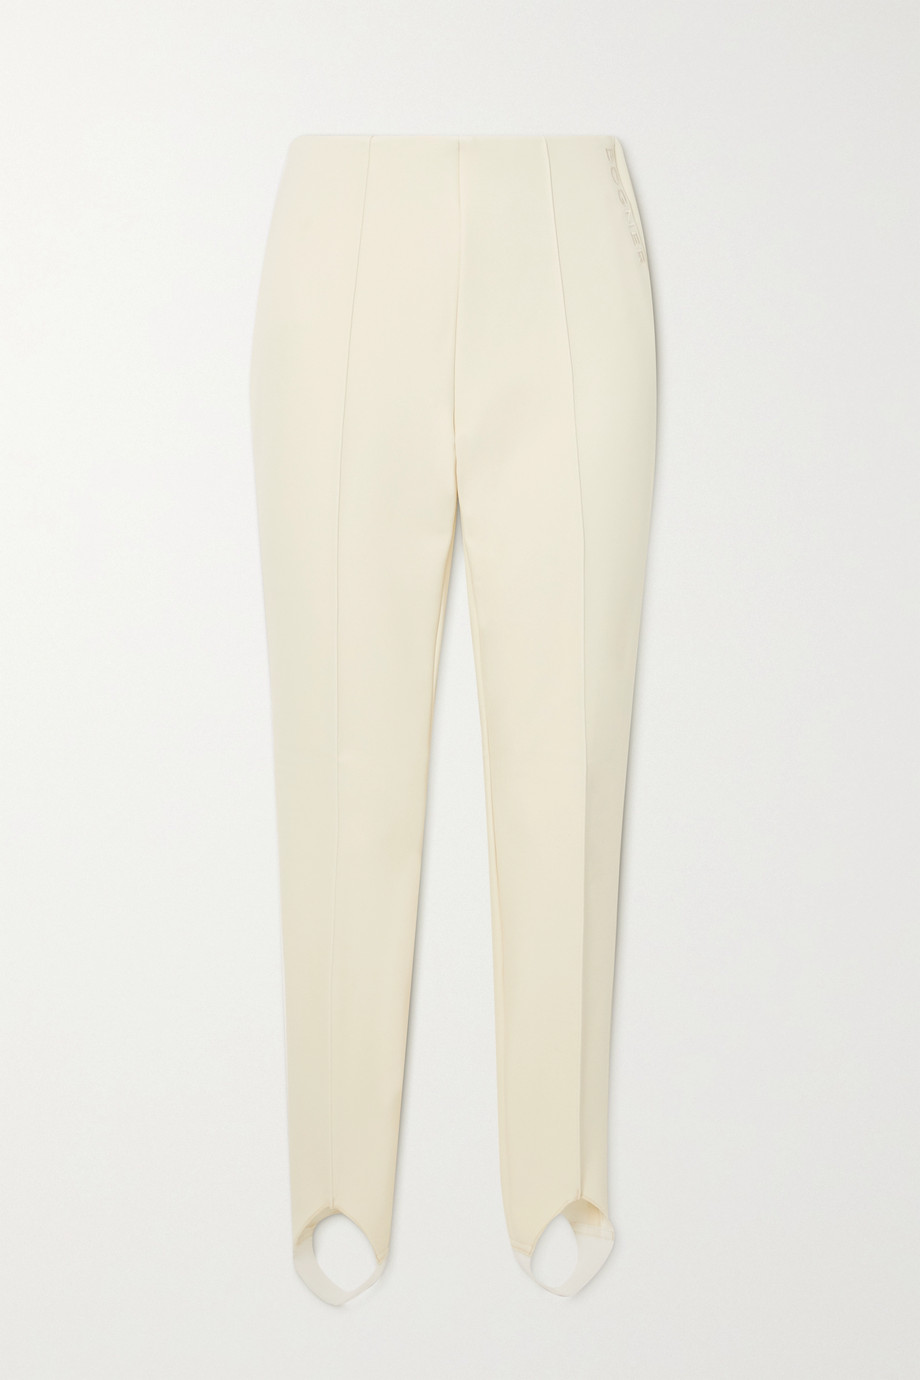 Bogner Elaine stretch stirrup ski pants